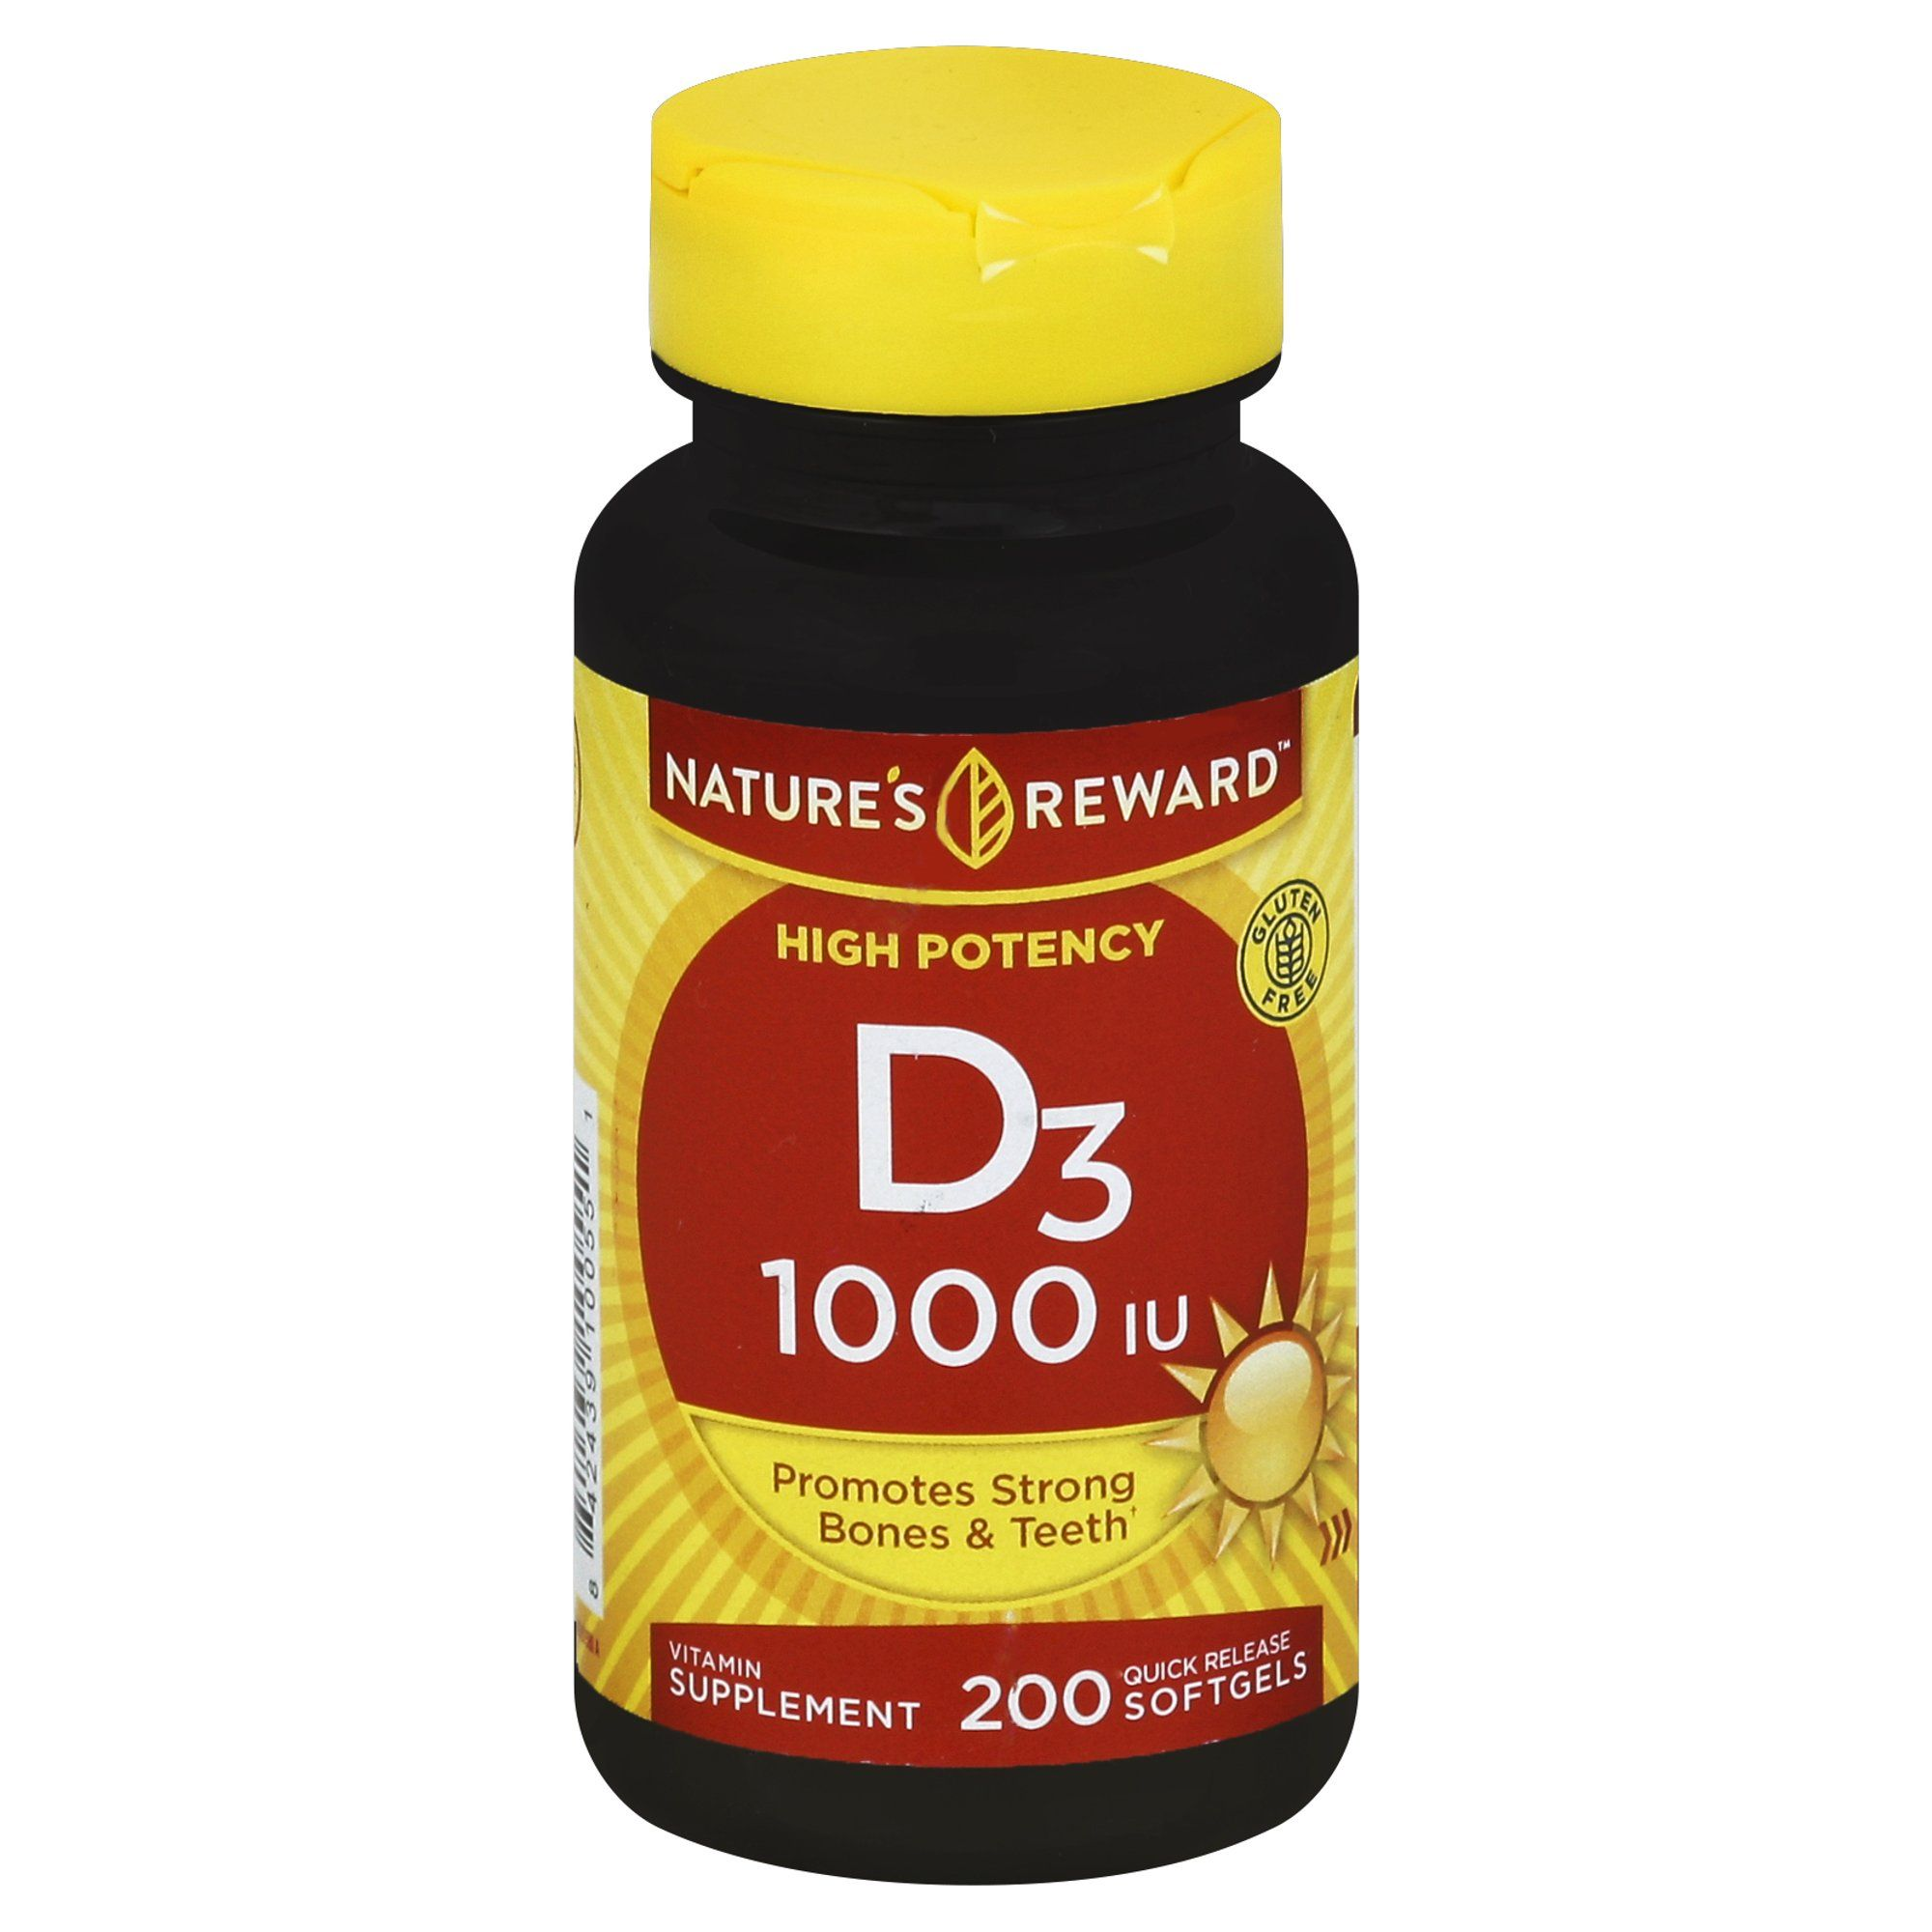 Nature's Reward Vitamin D3 1000 Iu 200 ct Vitamin,